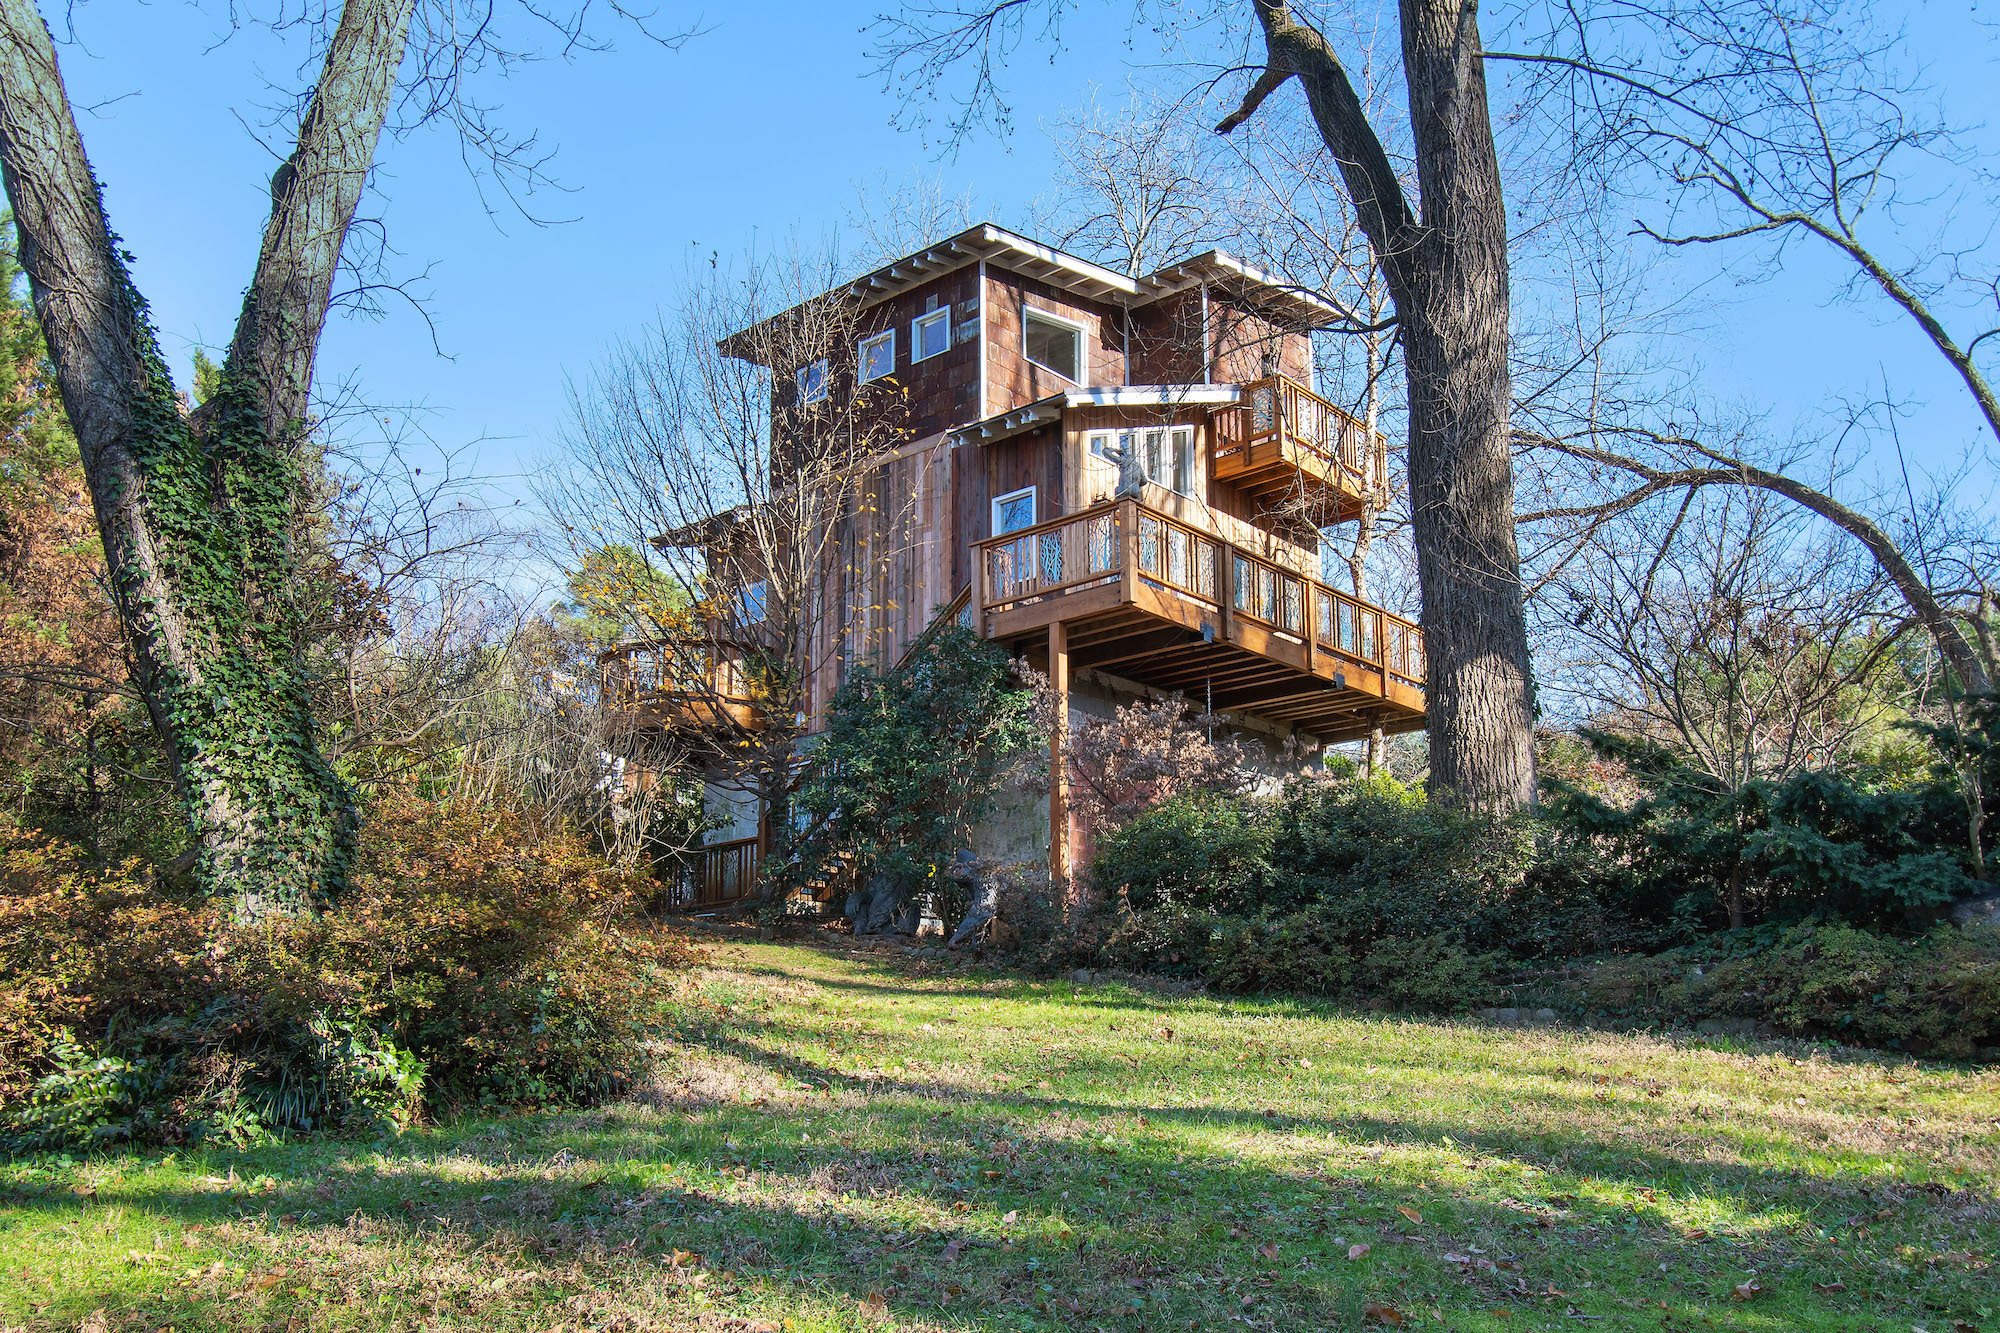 Two-story home built on stilts with trees and grass in the foreground.